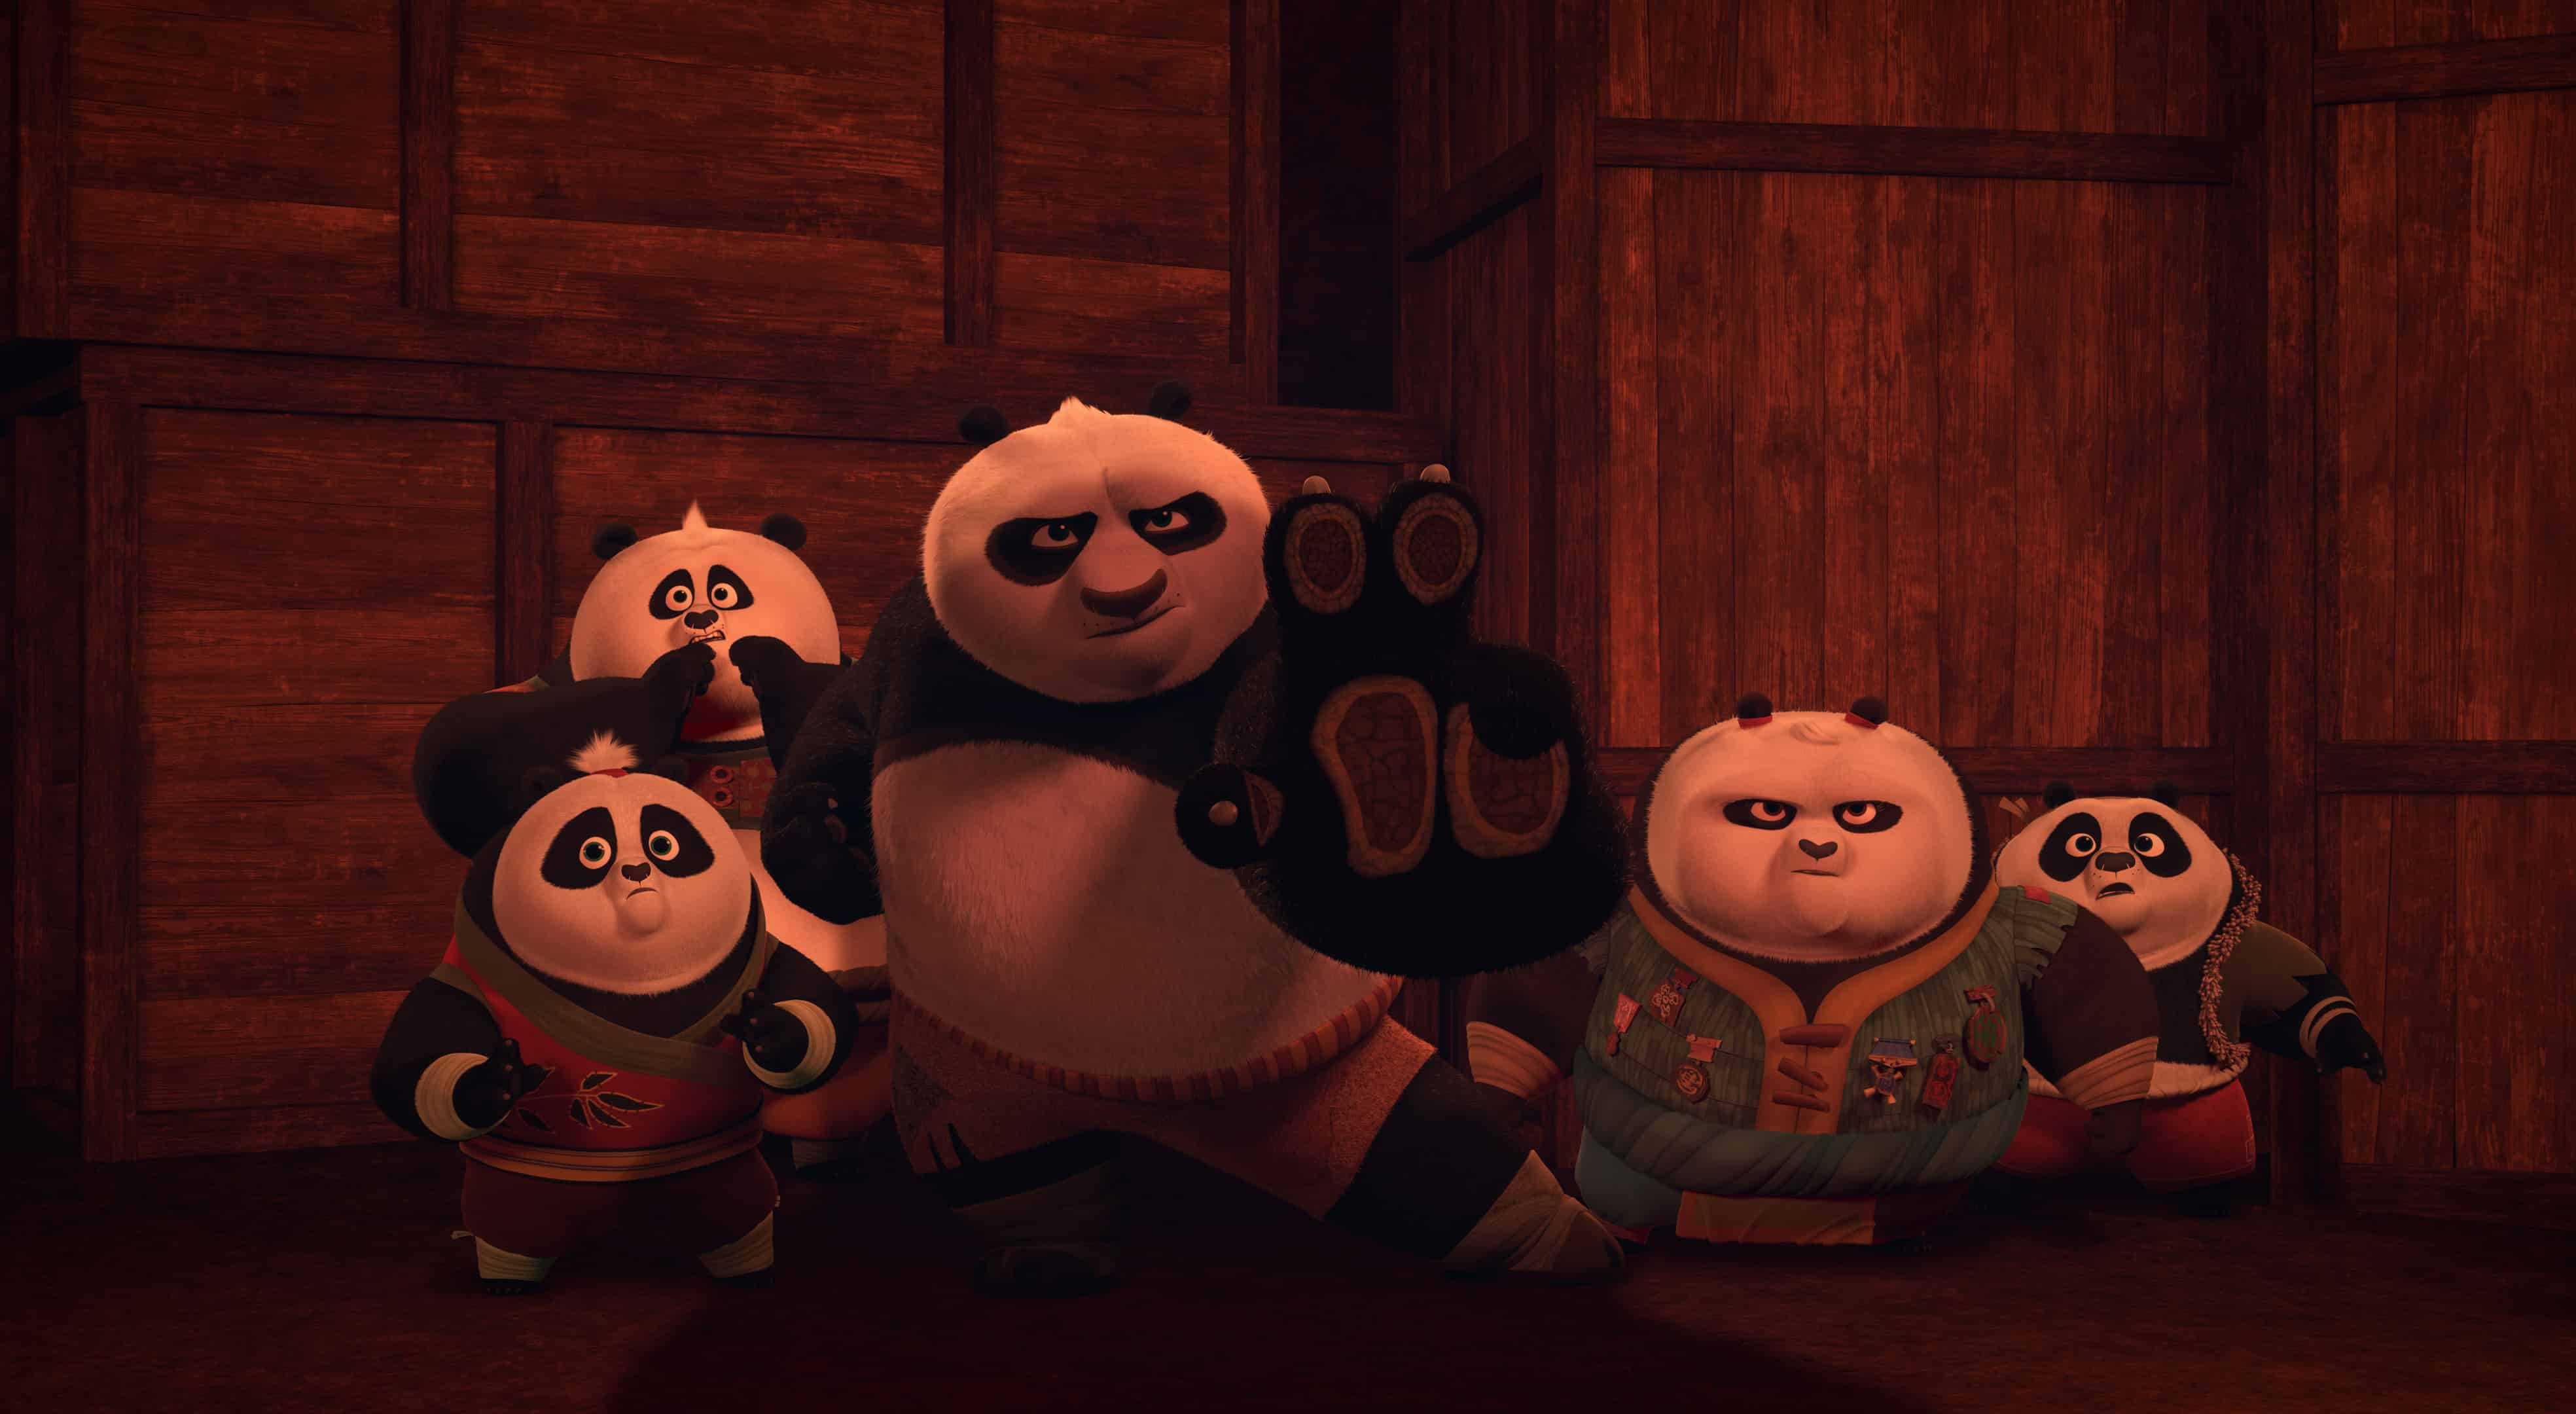 The Dreamworks Kung Fu Panda The Paws Of Destiny Season 2 Trailer Is Here